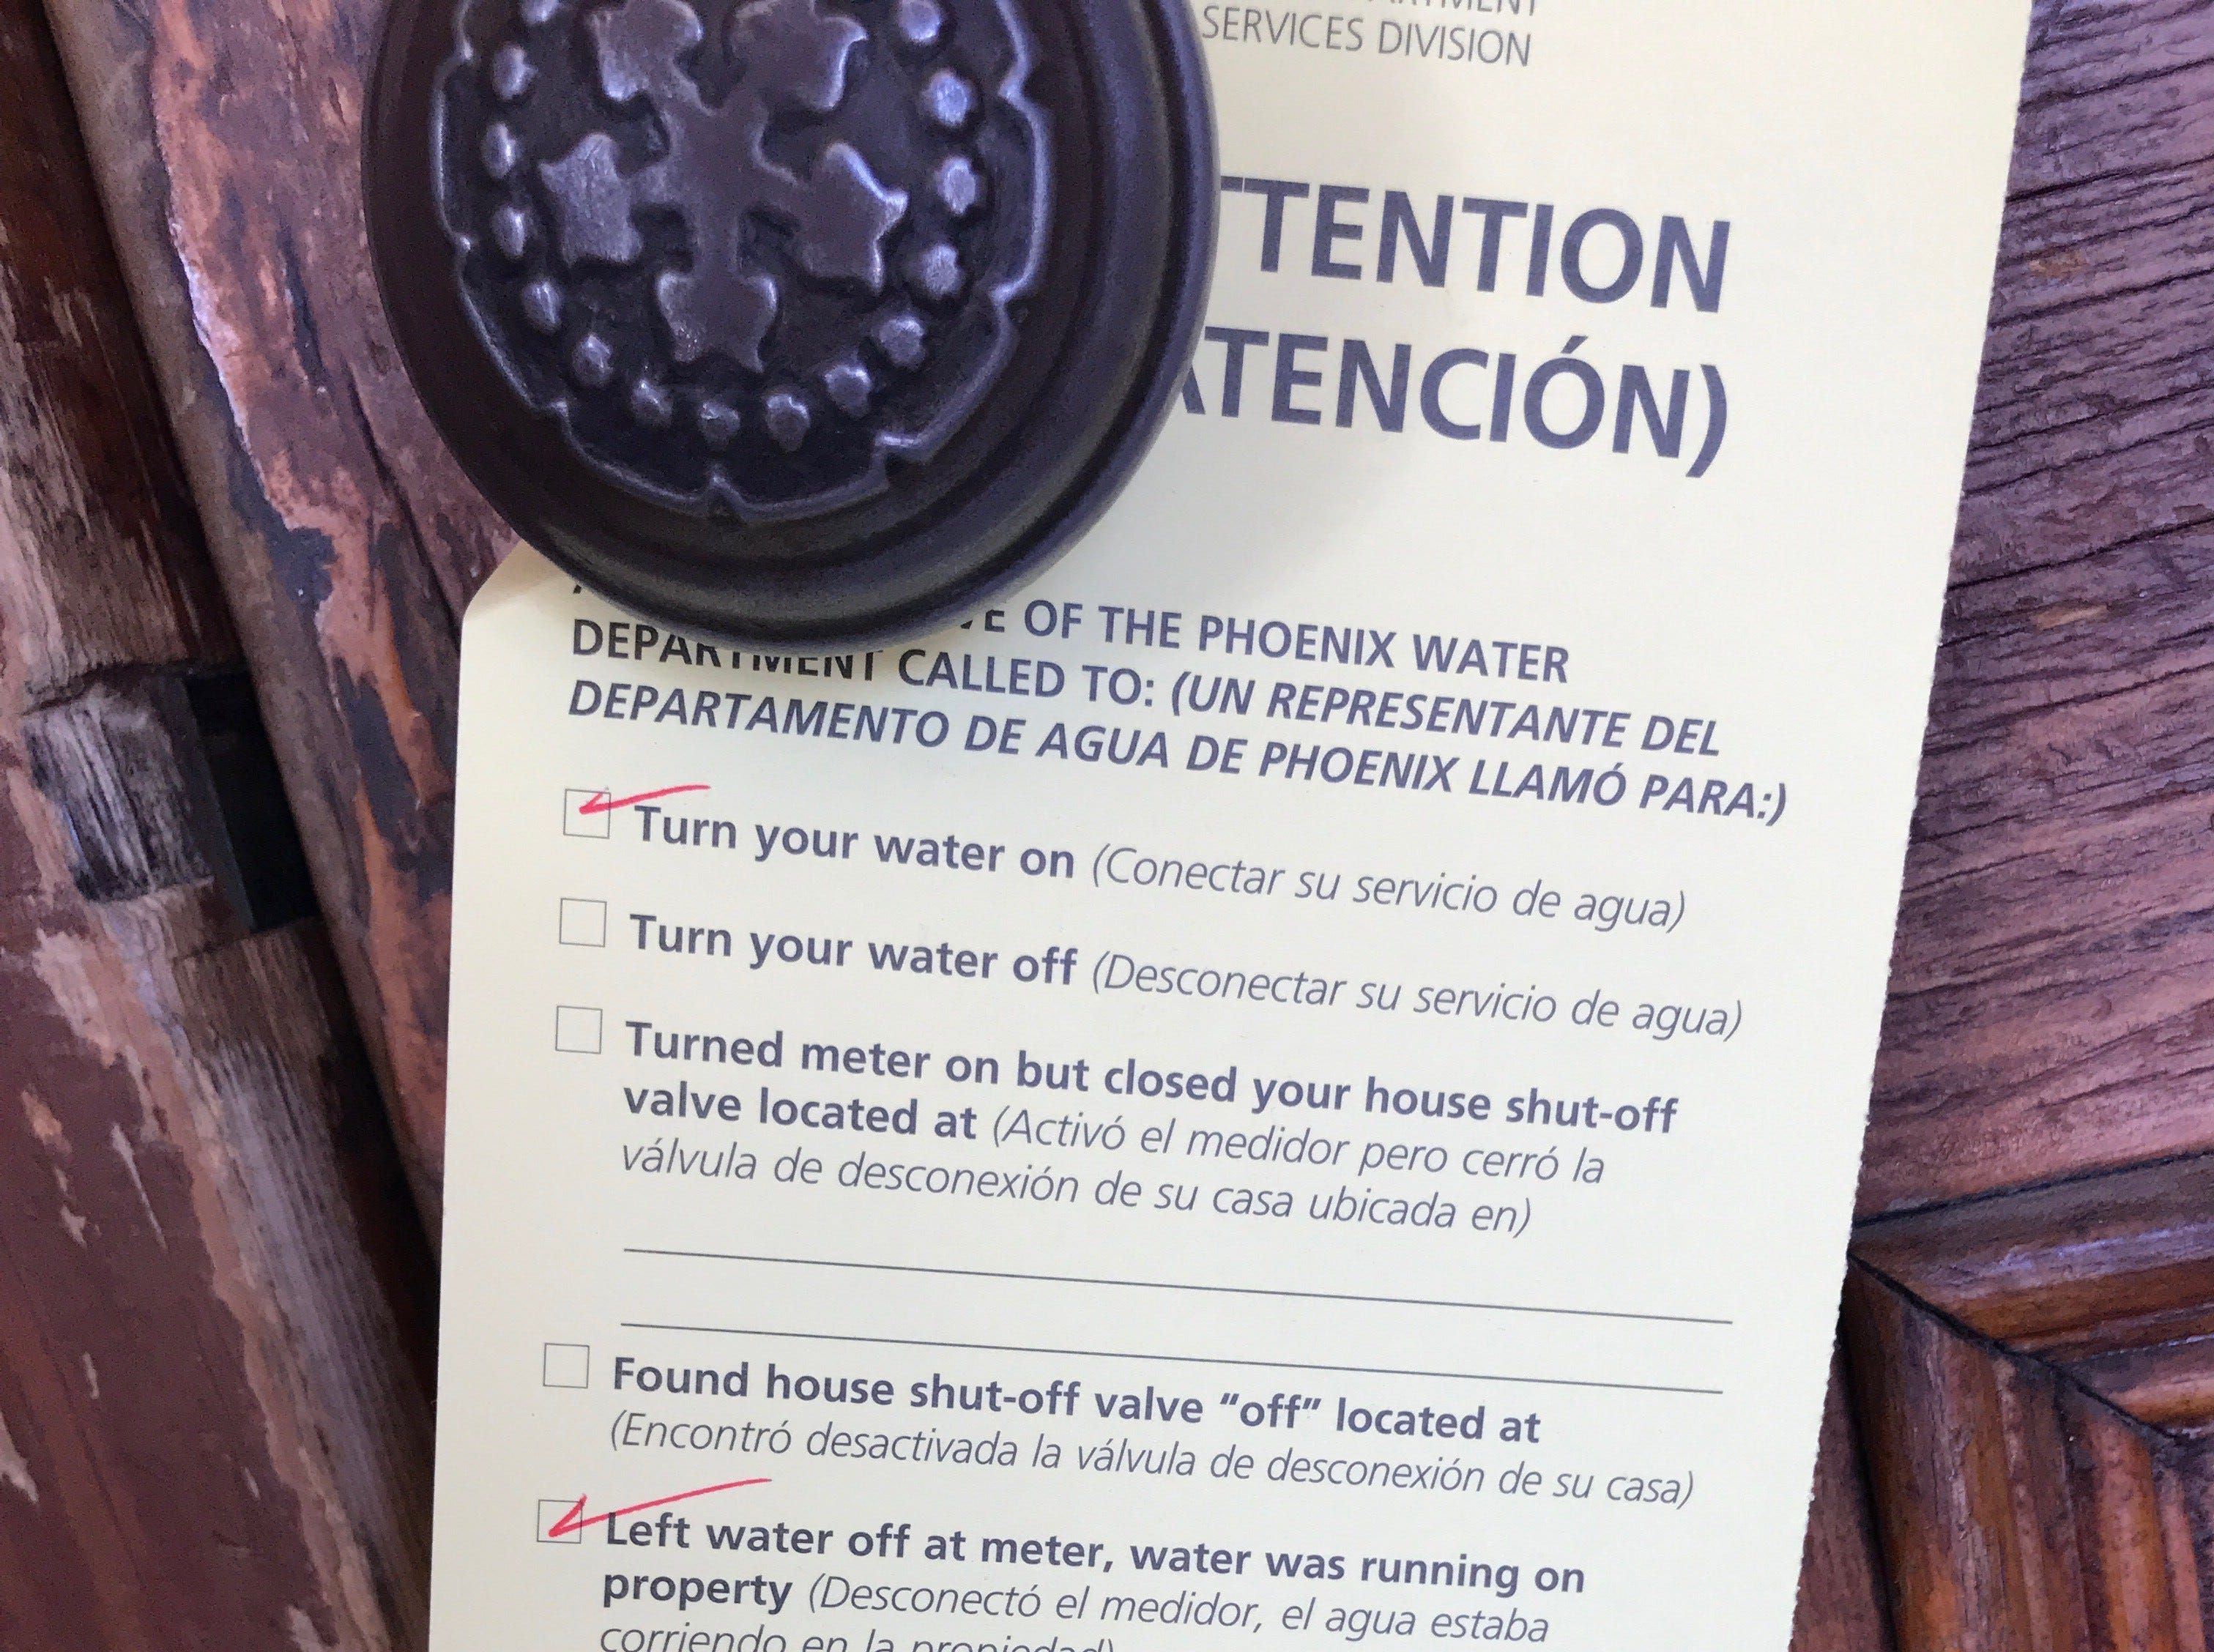 "Phoenix Water Department's sign hangs on the door of The Rose & Crown Pub at 628 E. Adams St., Phoenix, on Oct. 31, 2018. The box indicating officials called to ""turn your water on"" is checked."